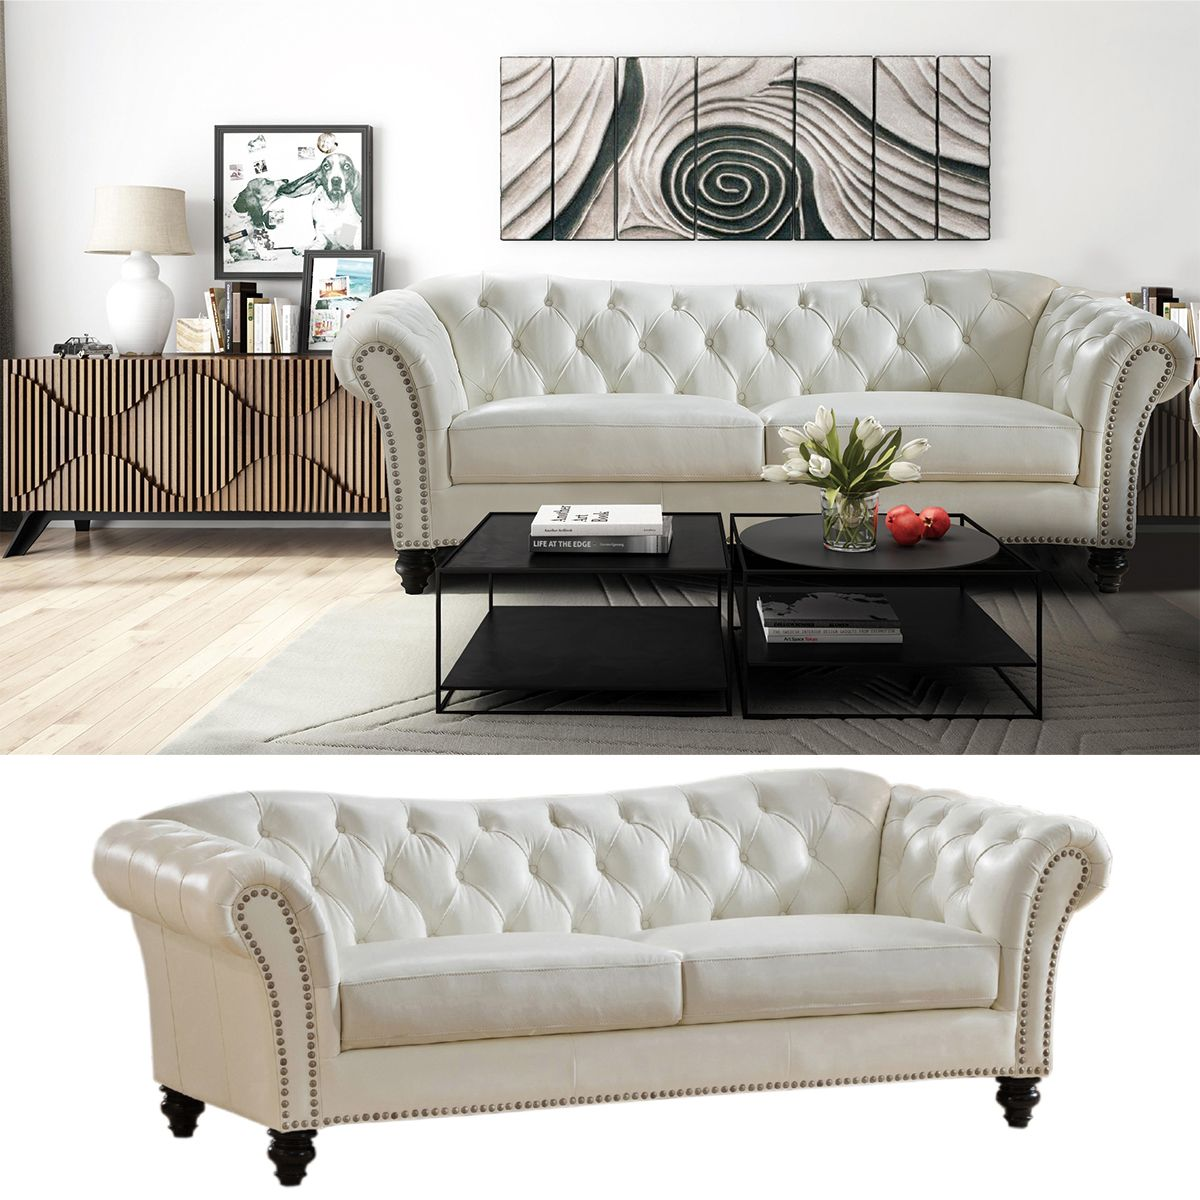 Paris Transitional Tufted White Leather Sectional Sofa: Jane Leather Craft Furniture Mona Sofa In Tufted Ivory